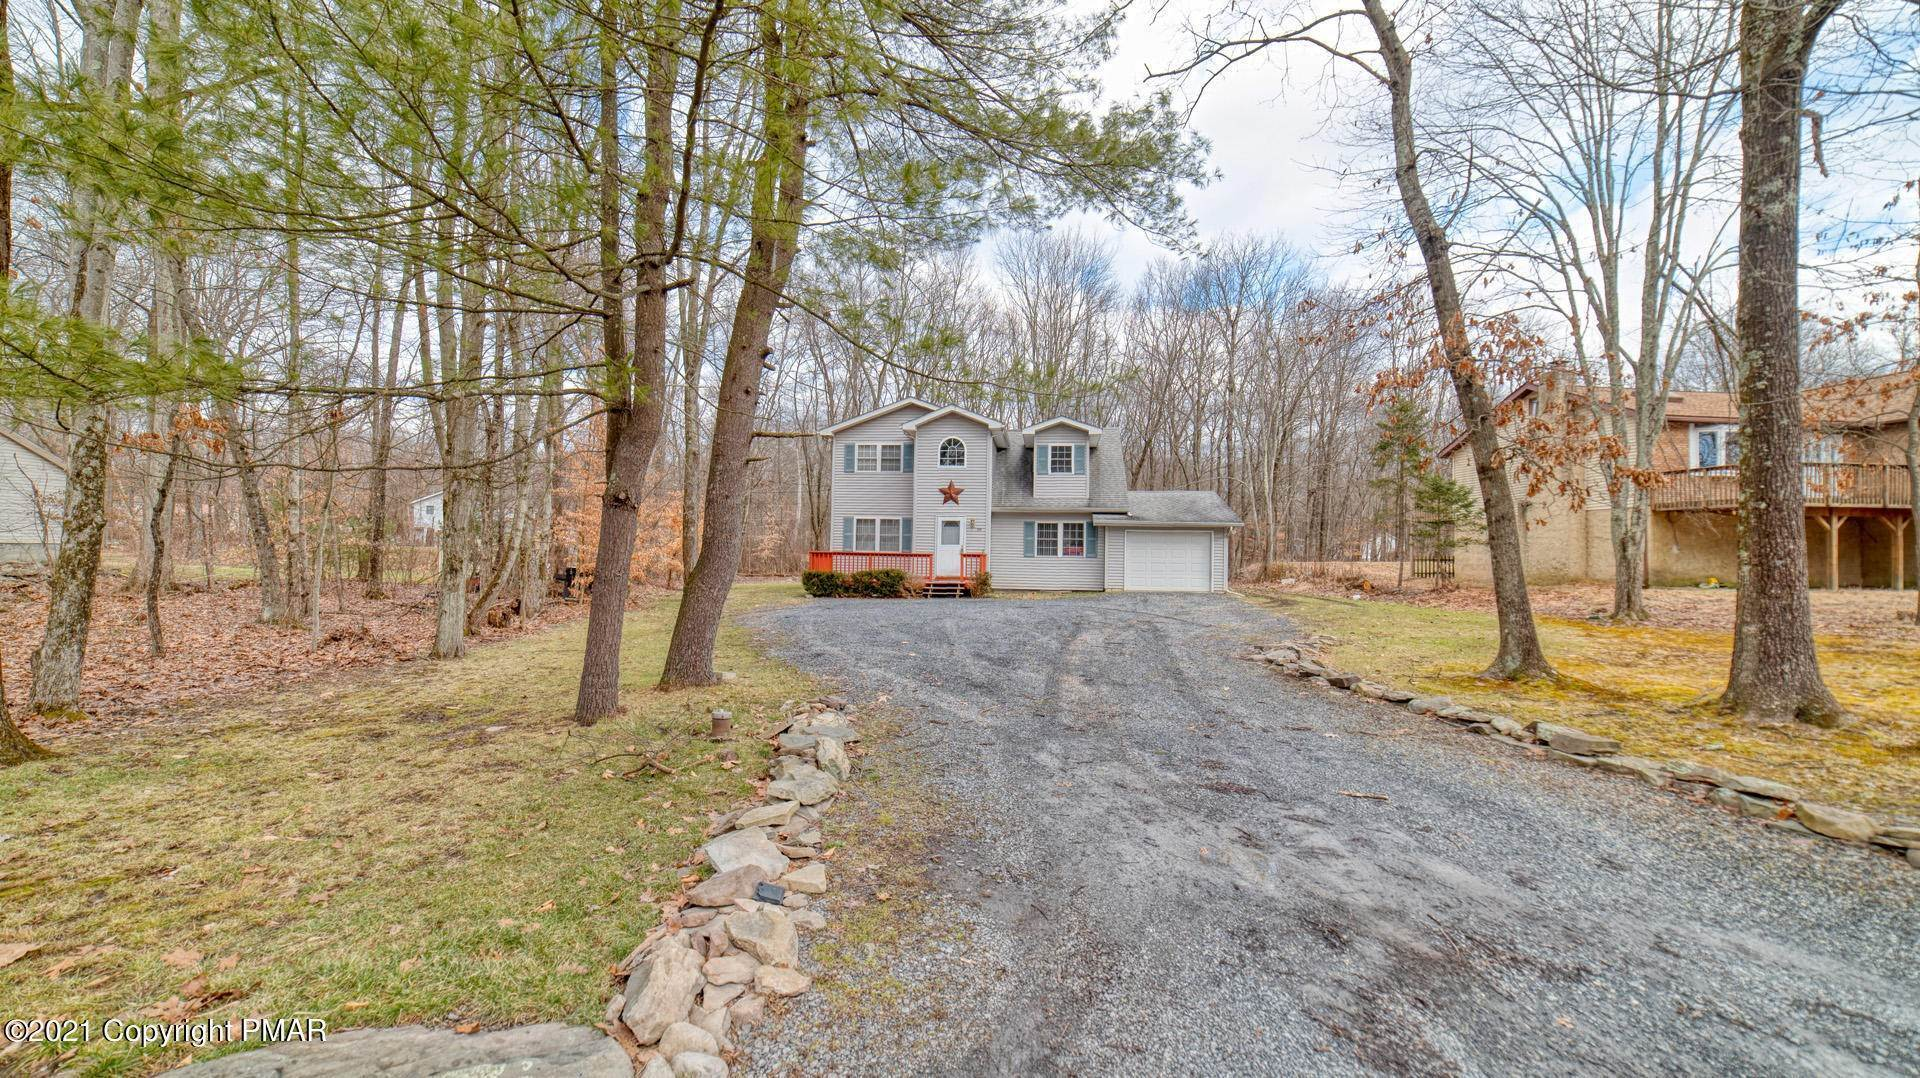 5. Single Family Homes for Sale at 129 Michelle Ln Bartonsville, Pennsylvania 18321 United States